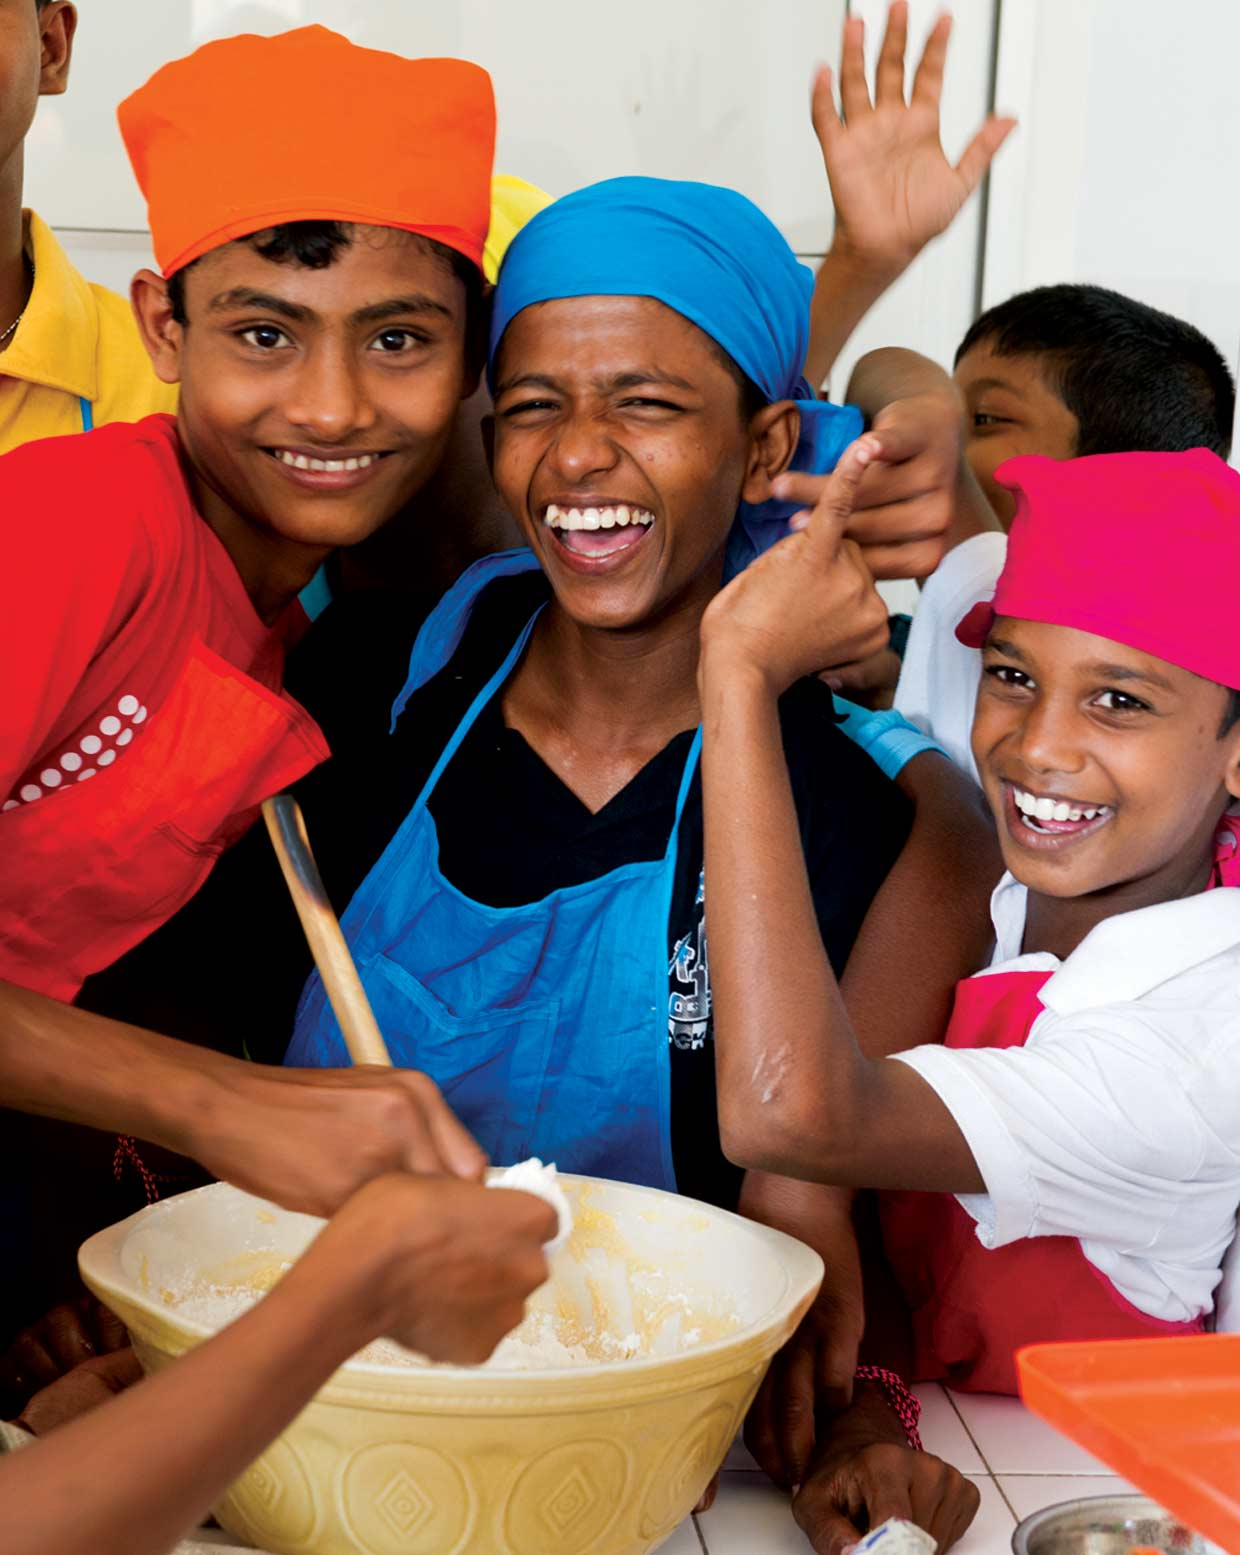 A cooking exercise to instill qualities of working together as a group. The MJF Kids have fun together at the MJF Foundation Centre, Moratuwa in January 2012 where children from marginalised communities are afforded the opportunities for a better future.